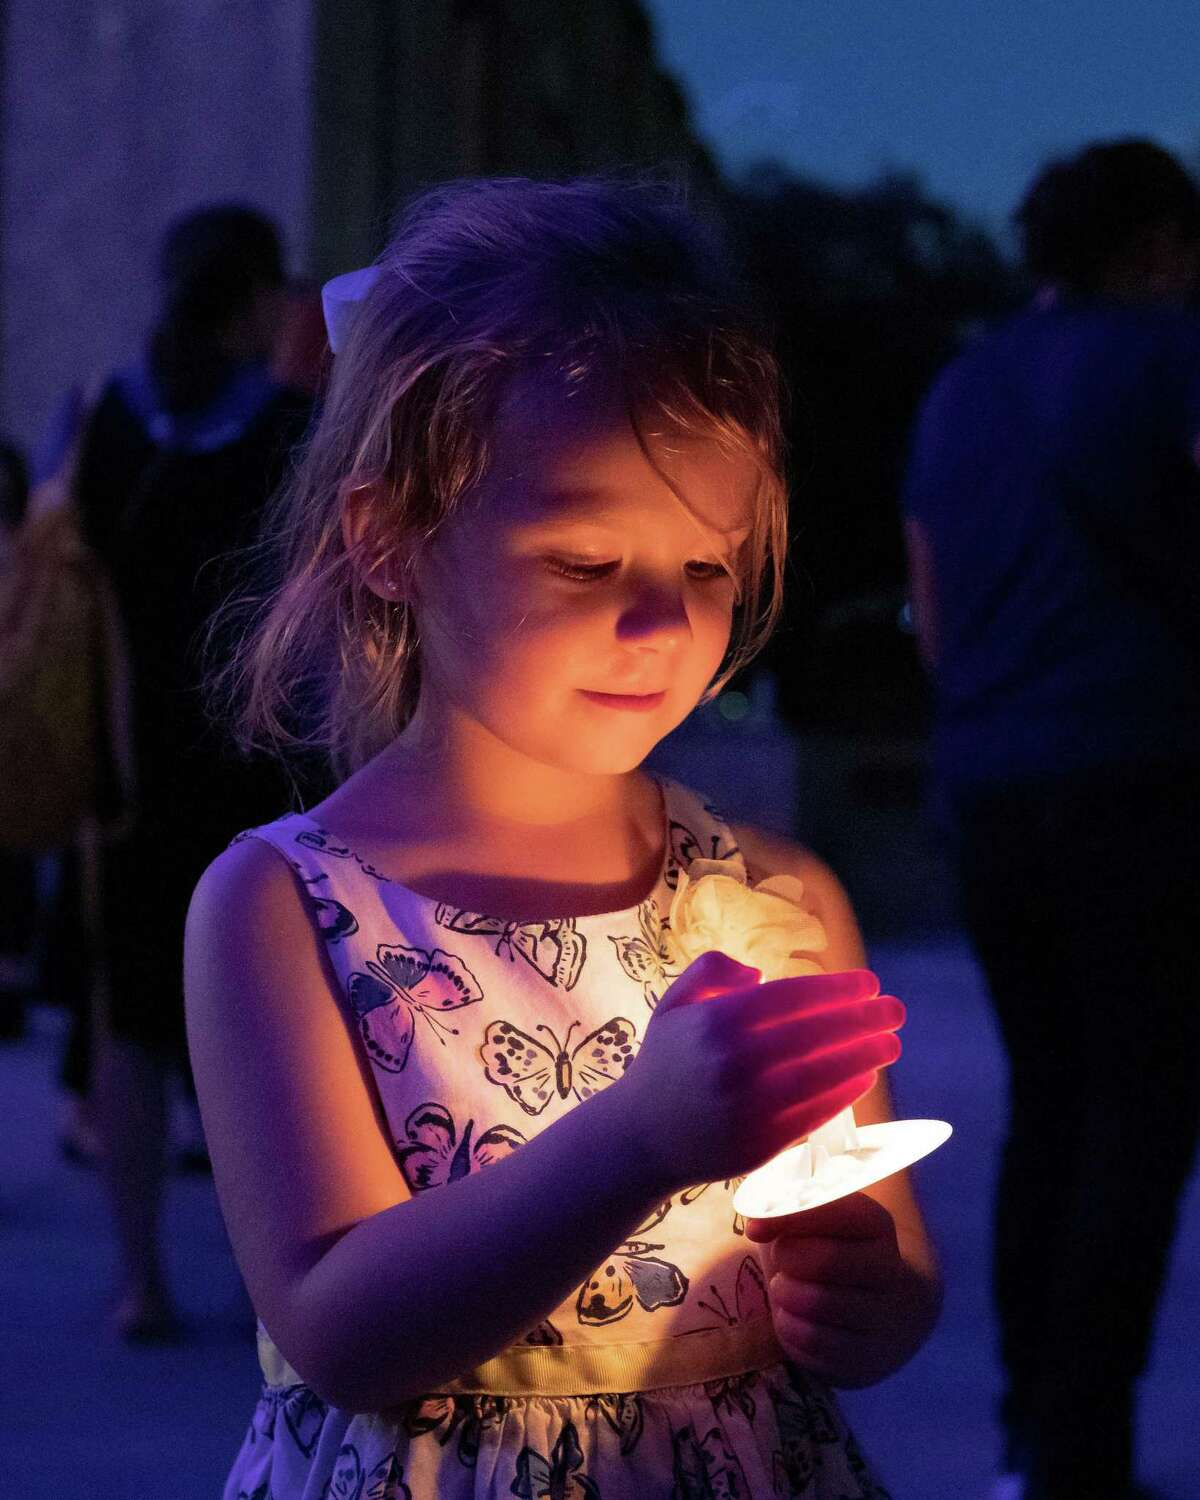 The Houston Area Women's Center hosted a candle-it vigil at City Hall to raise awareness about domestic violence Monday, Sep 30, 2019, in Houston.